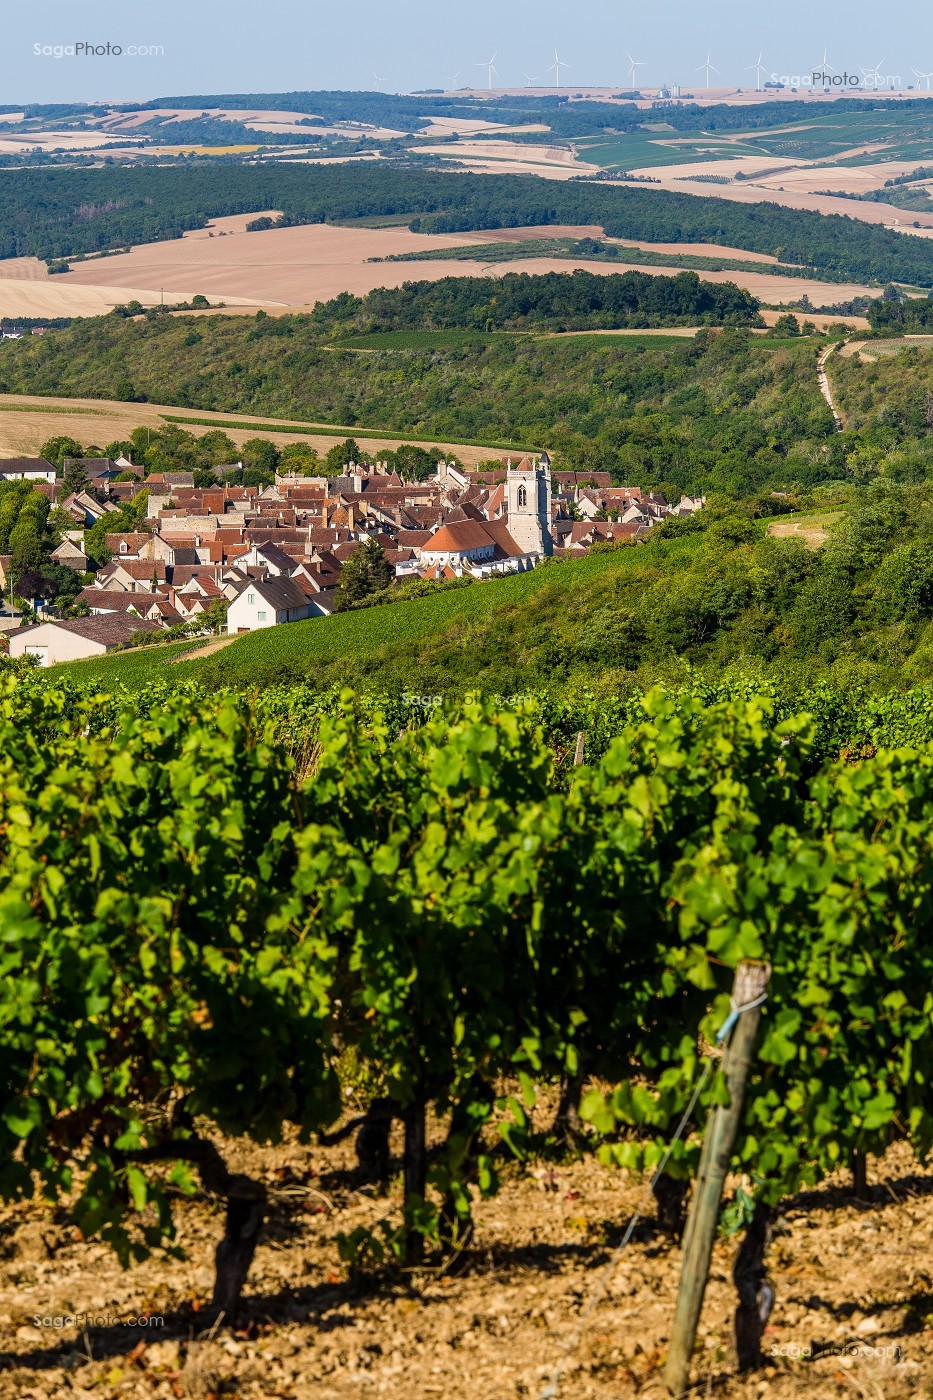 VIGNOBLE, IRANCY, YONNE, BOURGOGNE, FRANCE